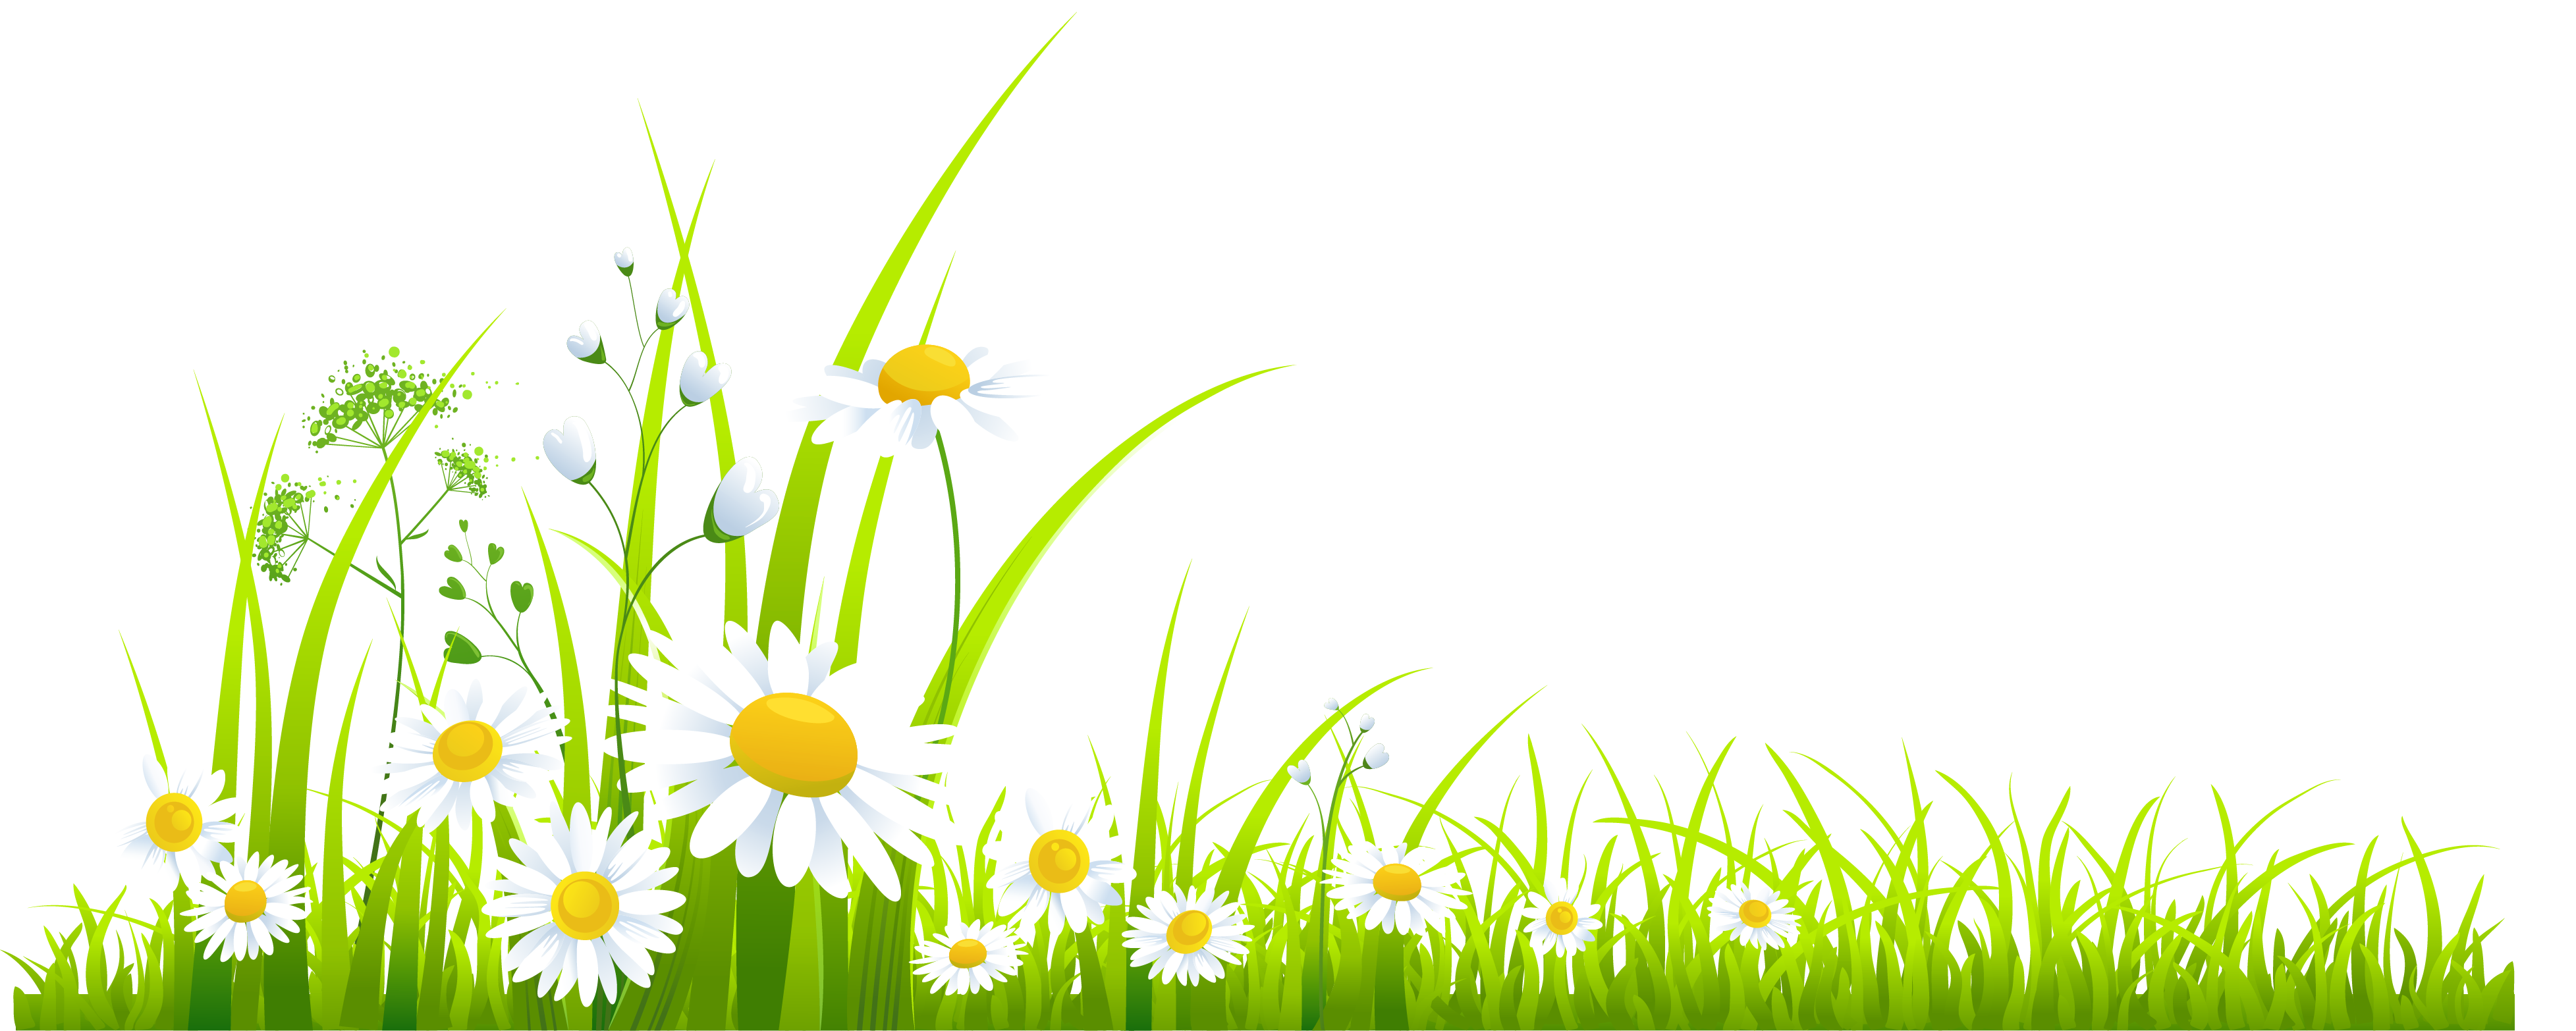 On free images clipartgo. Nature clipart spring banner royalty free download